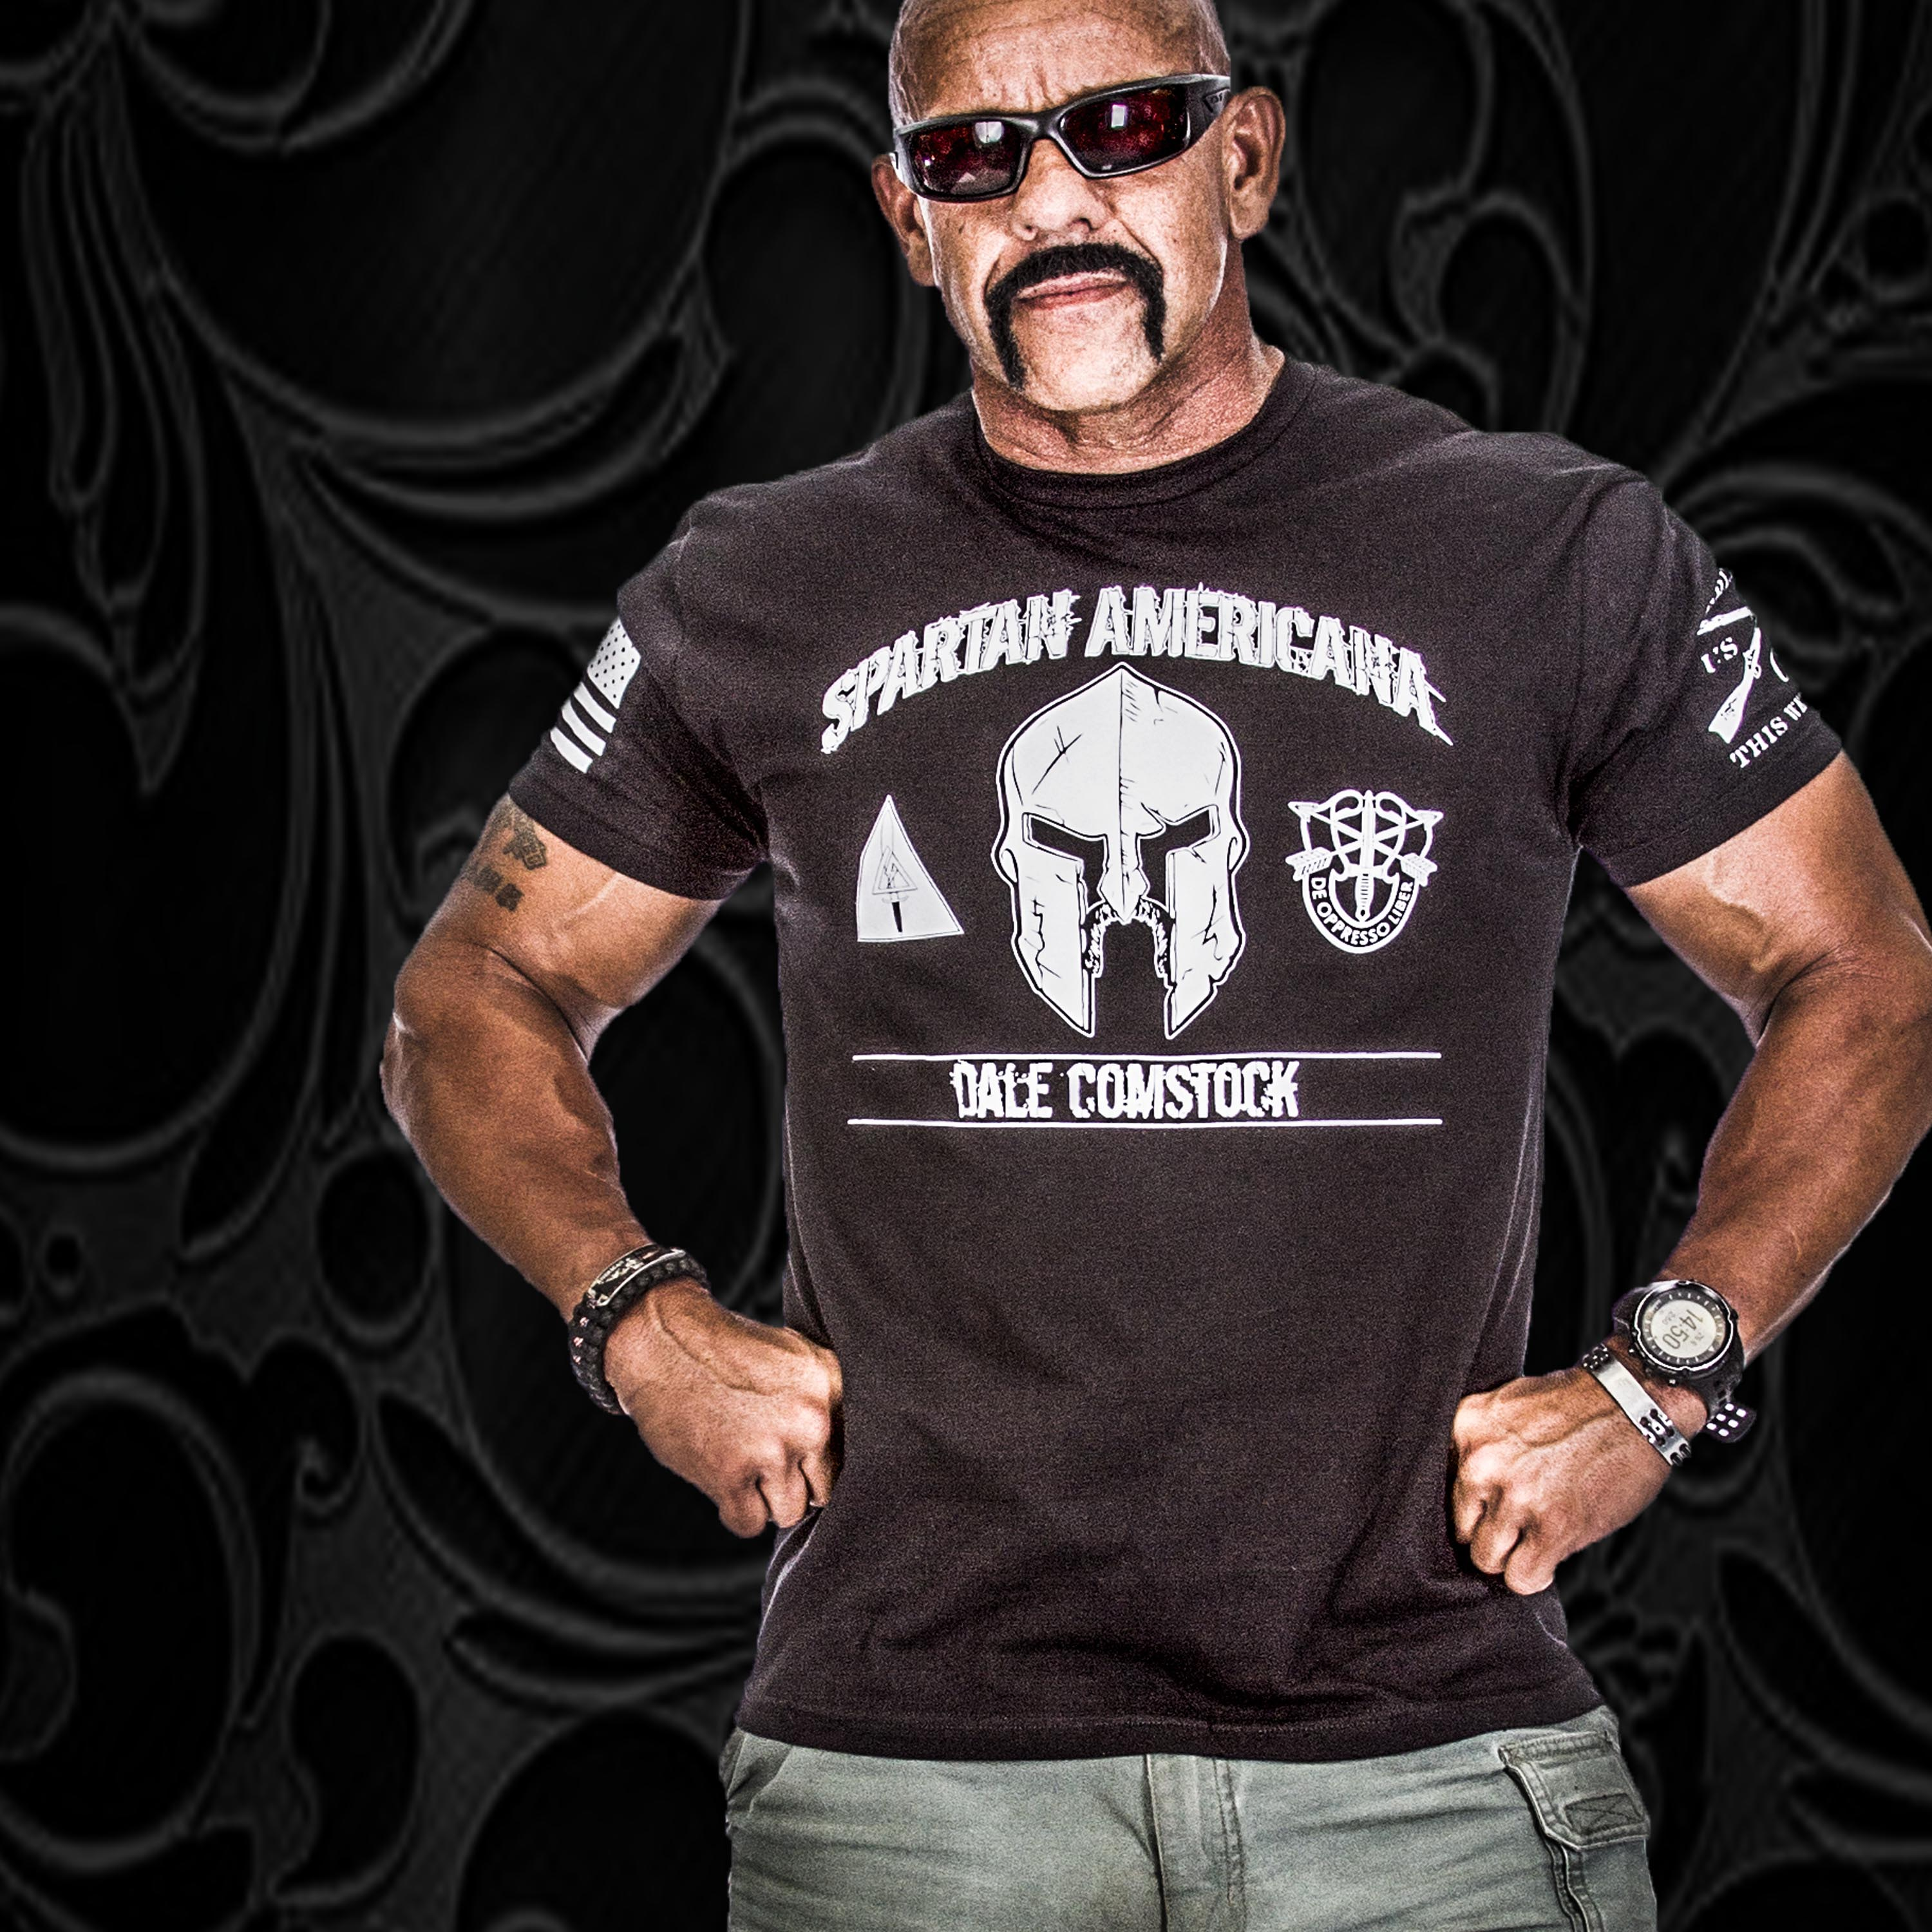 dale comstock designs grunt style t shirt to benefit tapout locos Tapout Hoodies